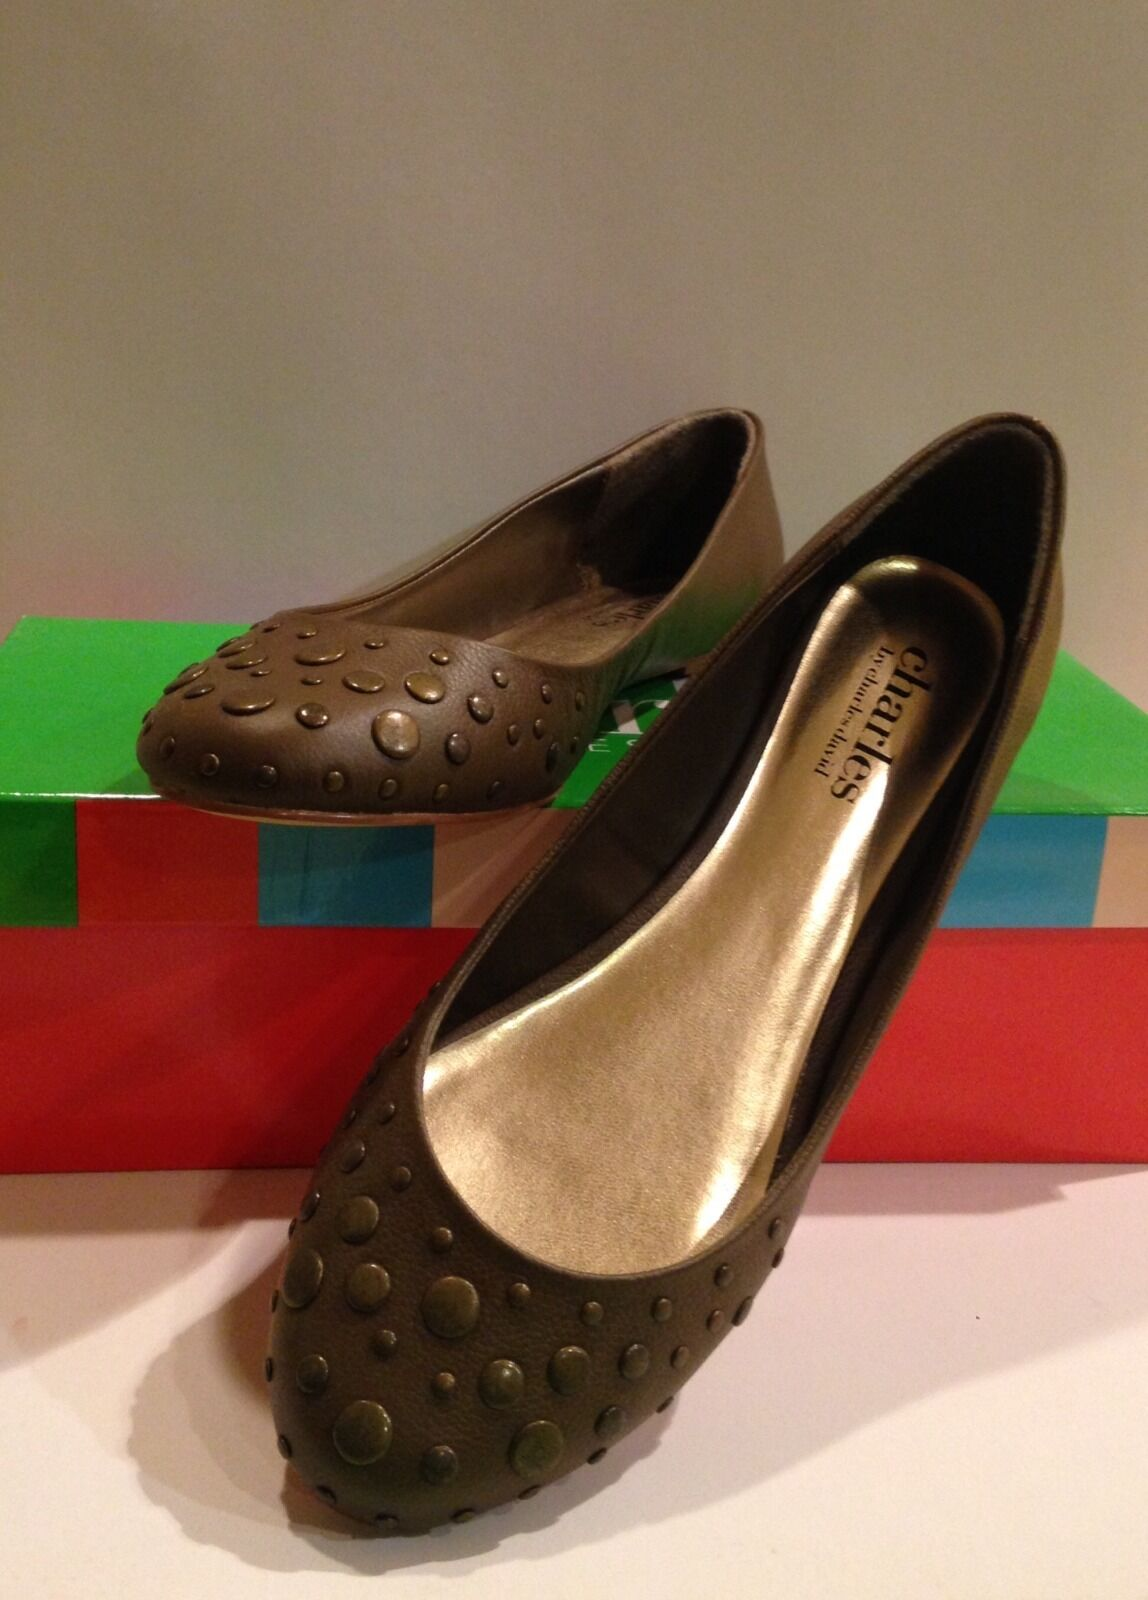 NIB pristine Charles David Studded Metallic Brown Pelle Ballet Flats shoes